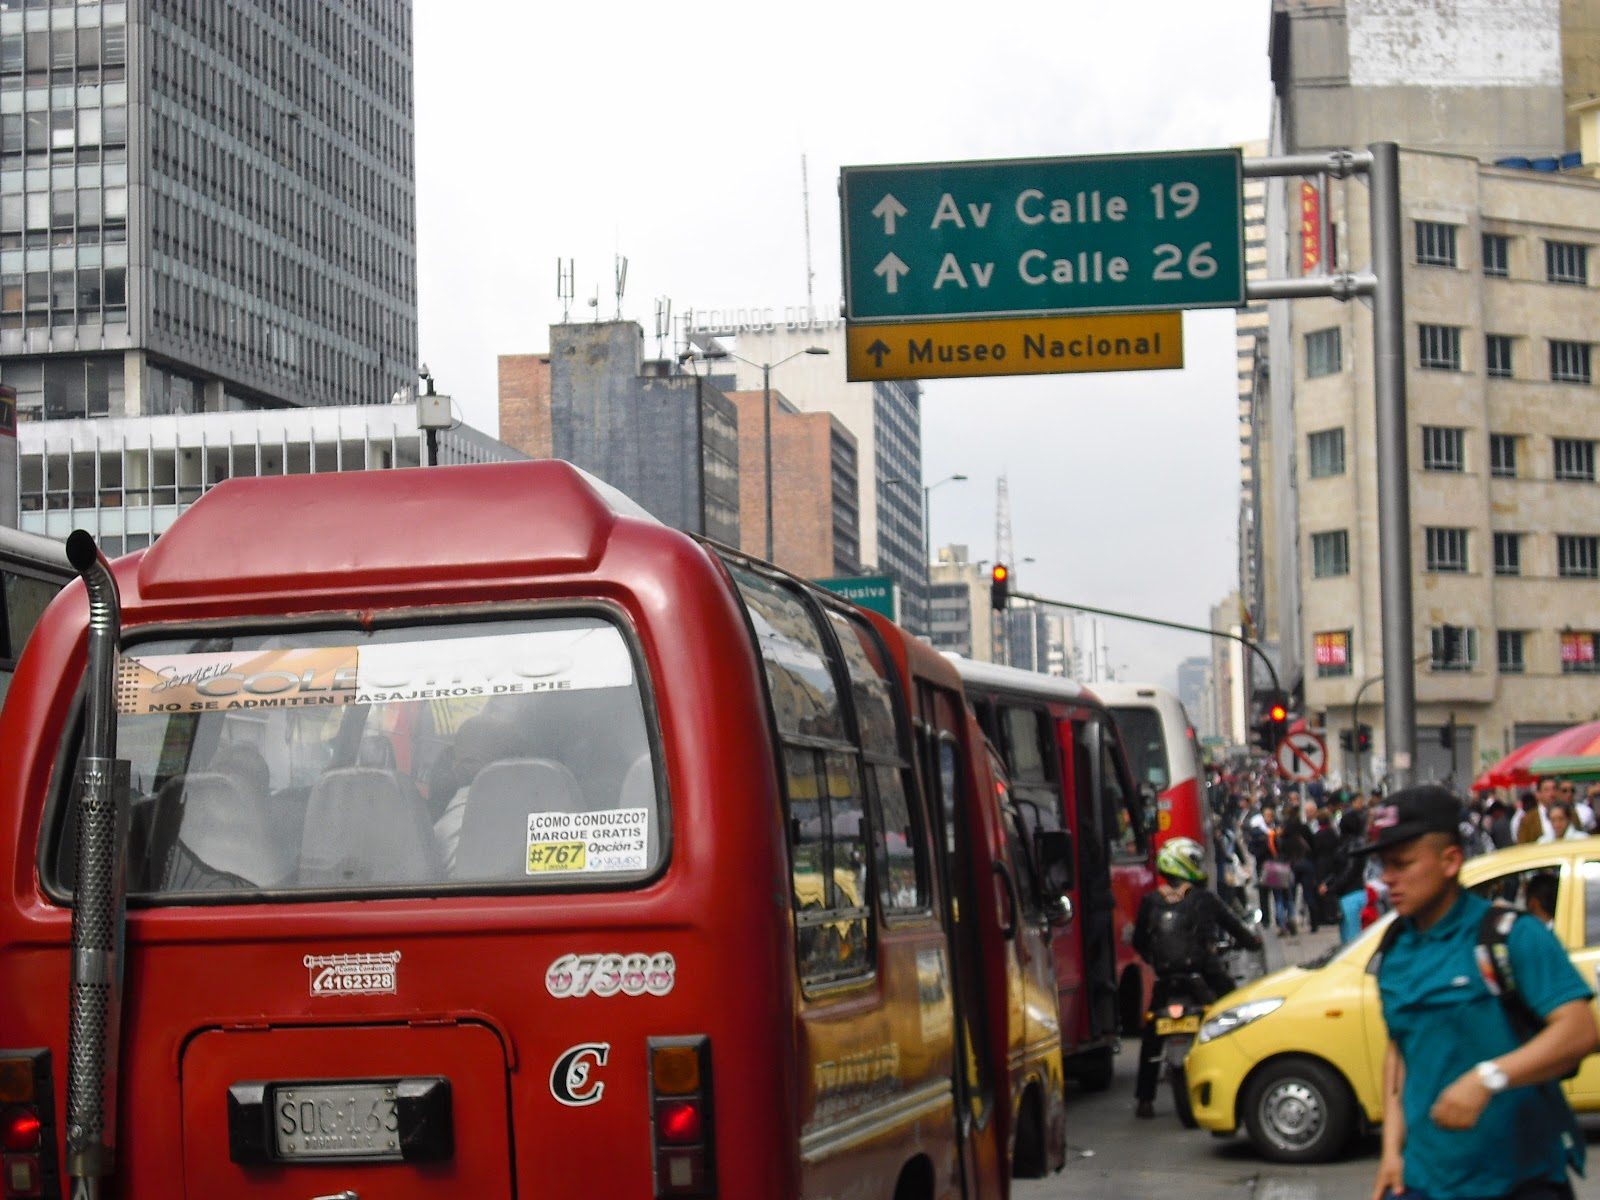 Old school buses in downtown Bogotá. Many of their drivers could do with some lessons ...